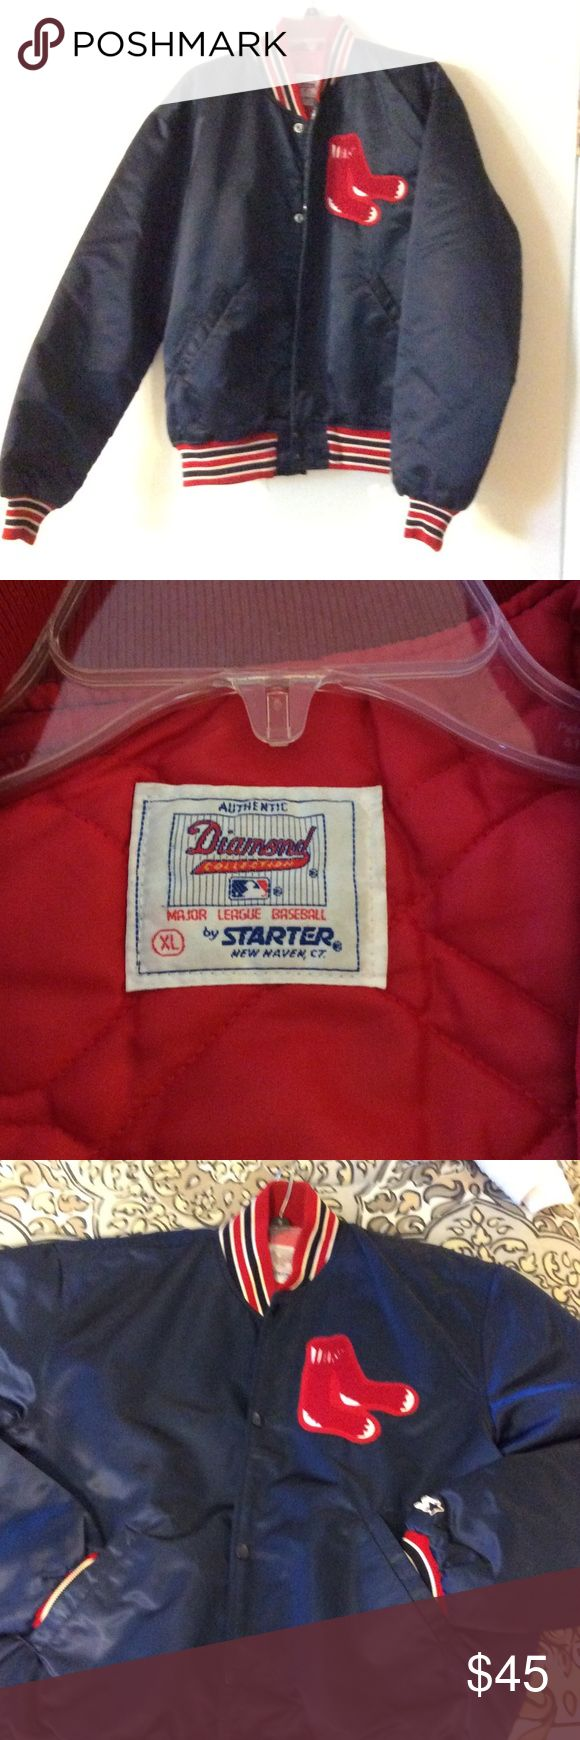 ⚾️ Vintage RED SOX Jacket ⚾️ The XL Red Sox jacket is in great condition.  It's looking for a new home, and it can be your.! No reasonable offer will be rejected. Diamond Jackets & Coats